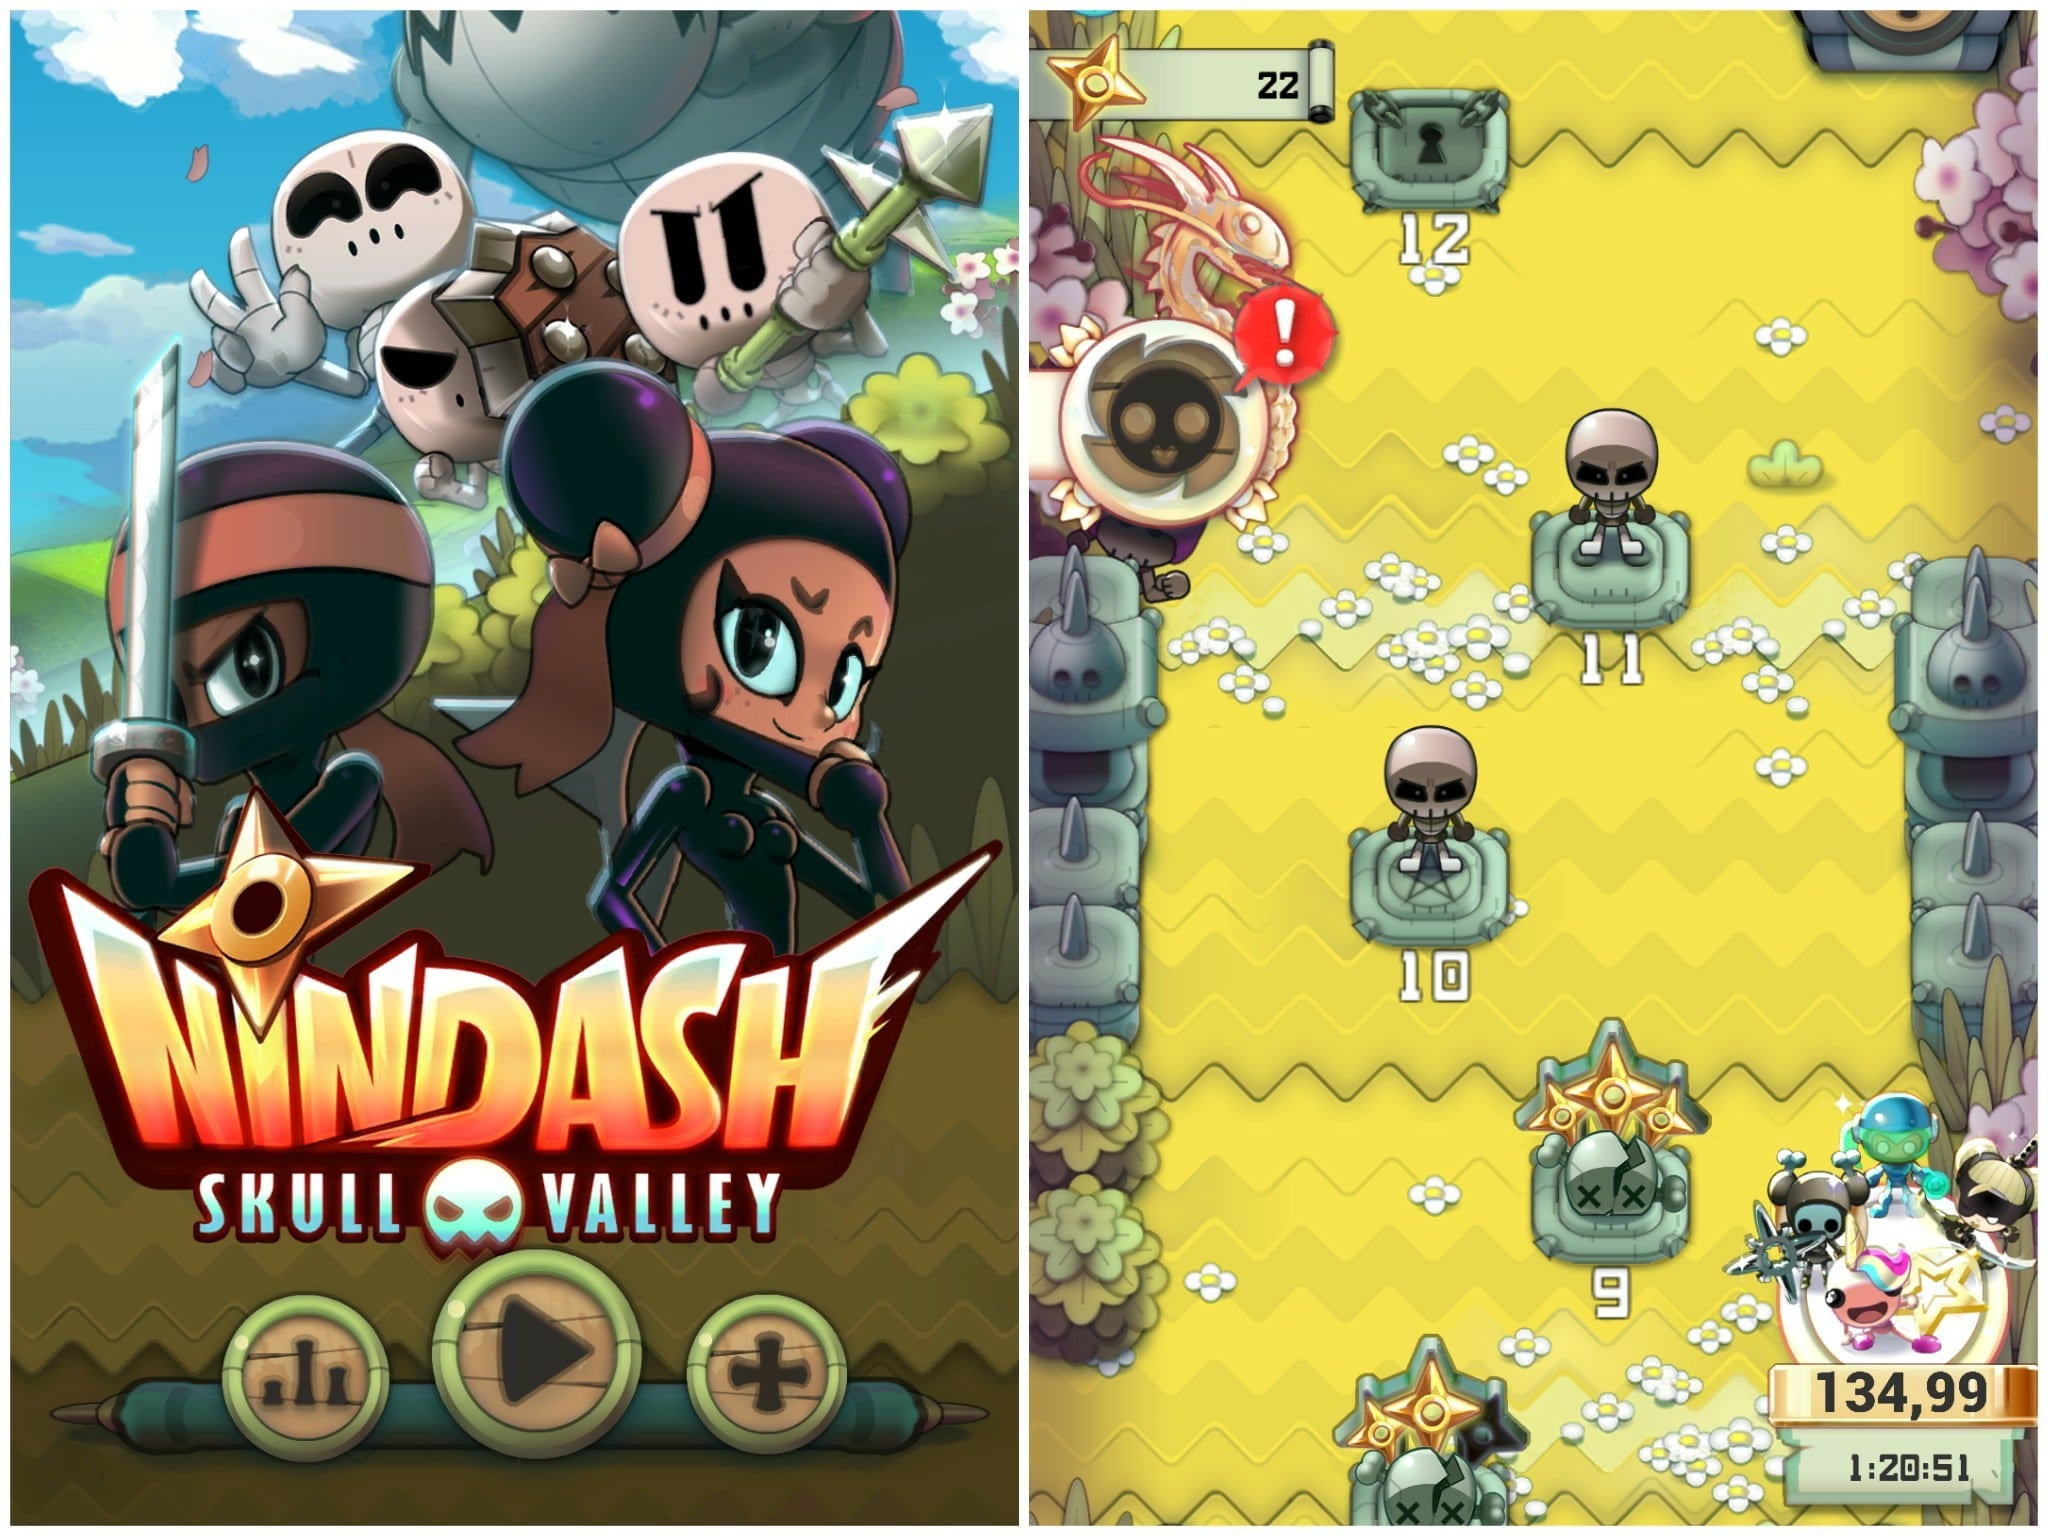 Nindash: Skull Valley